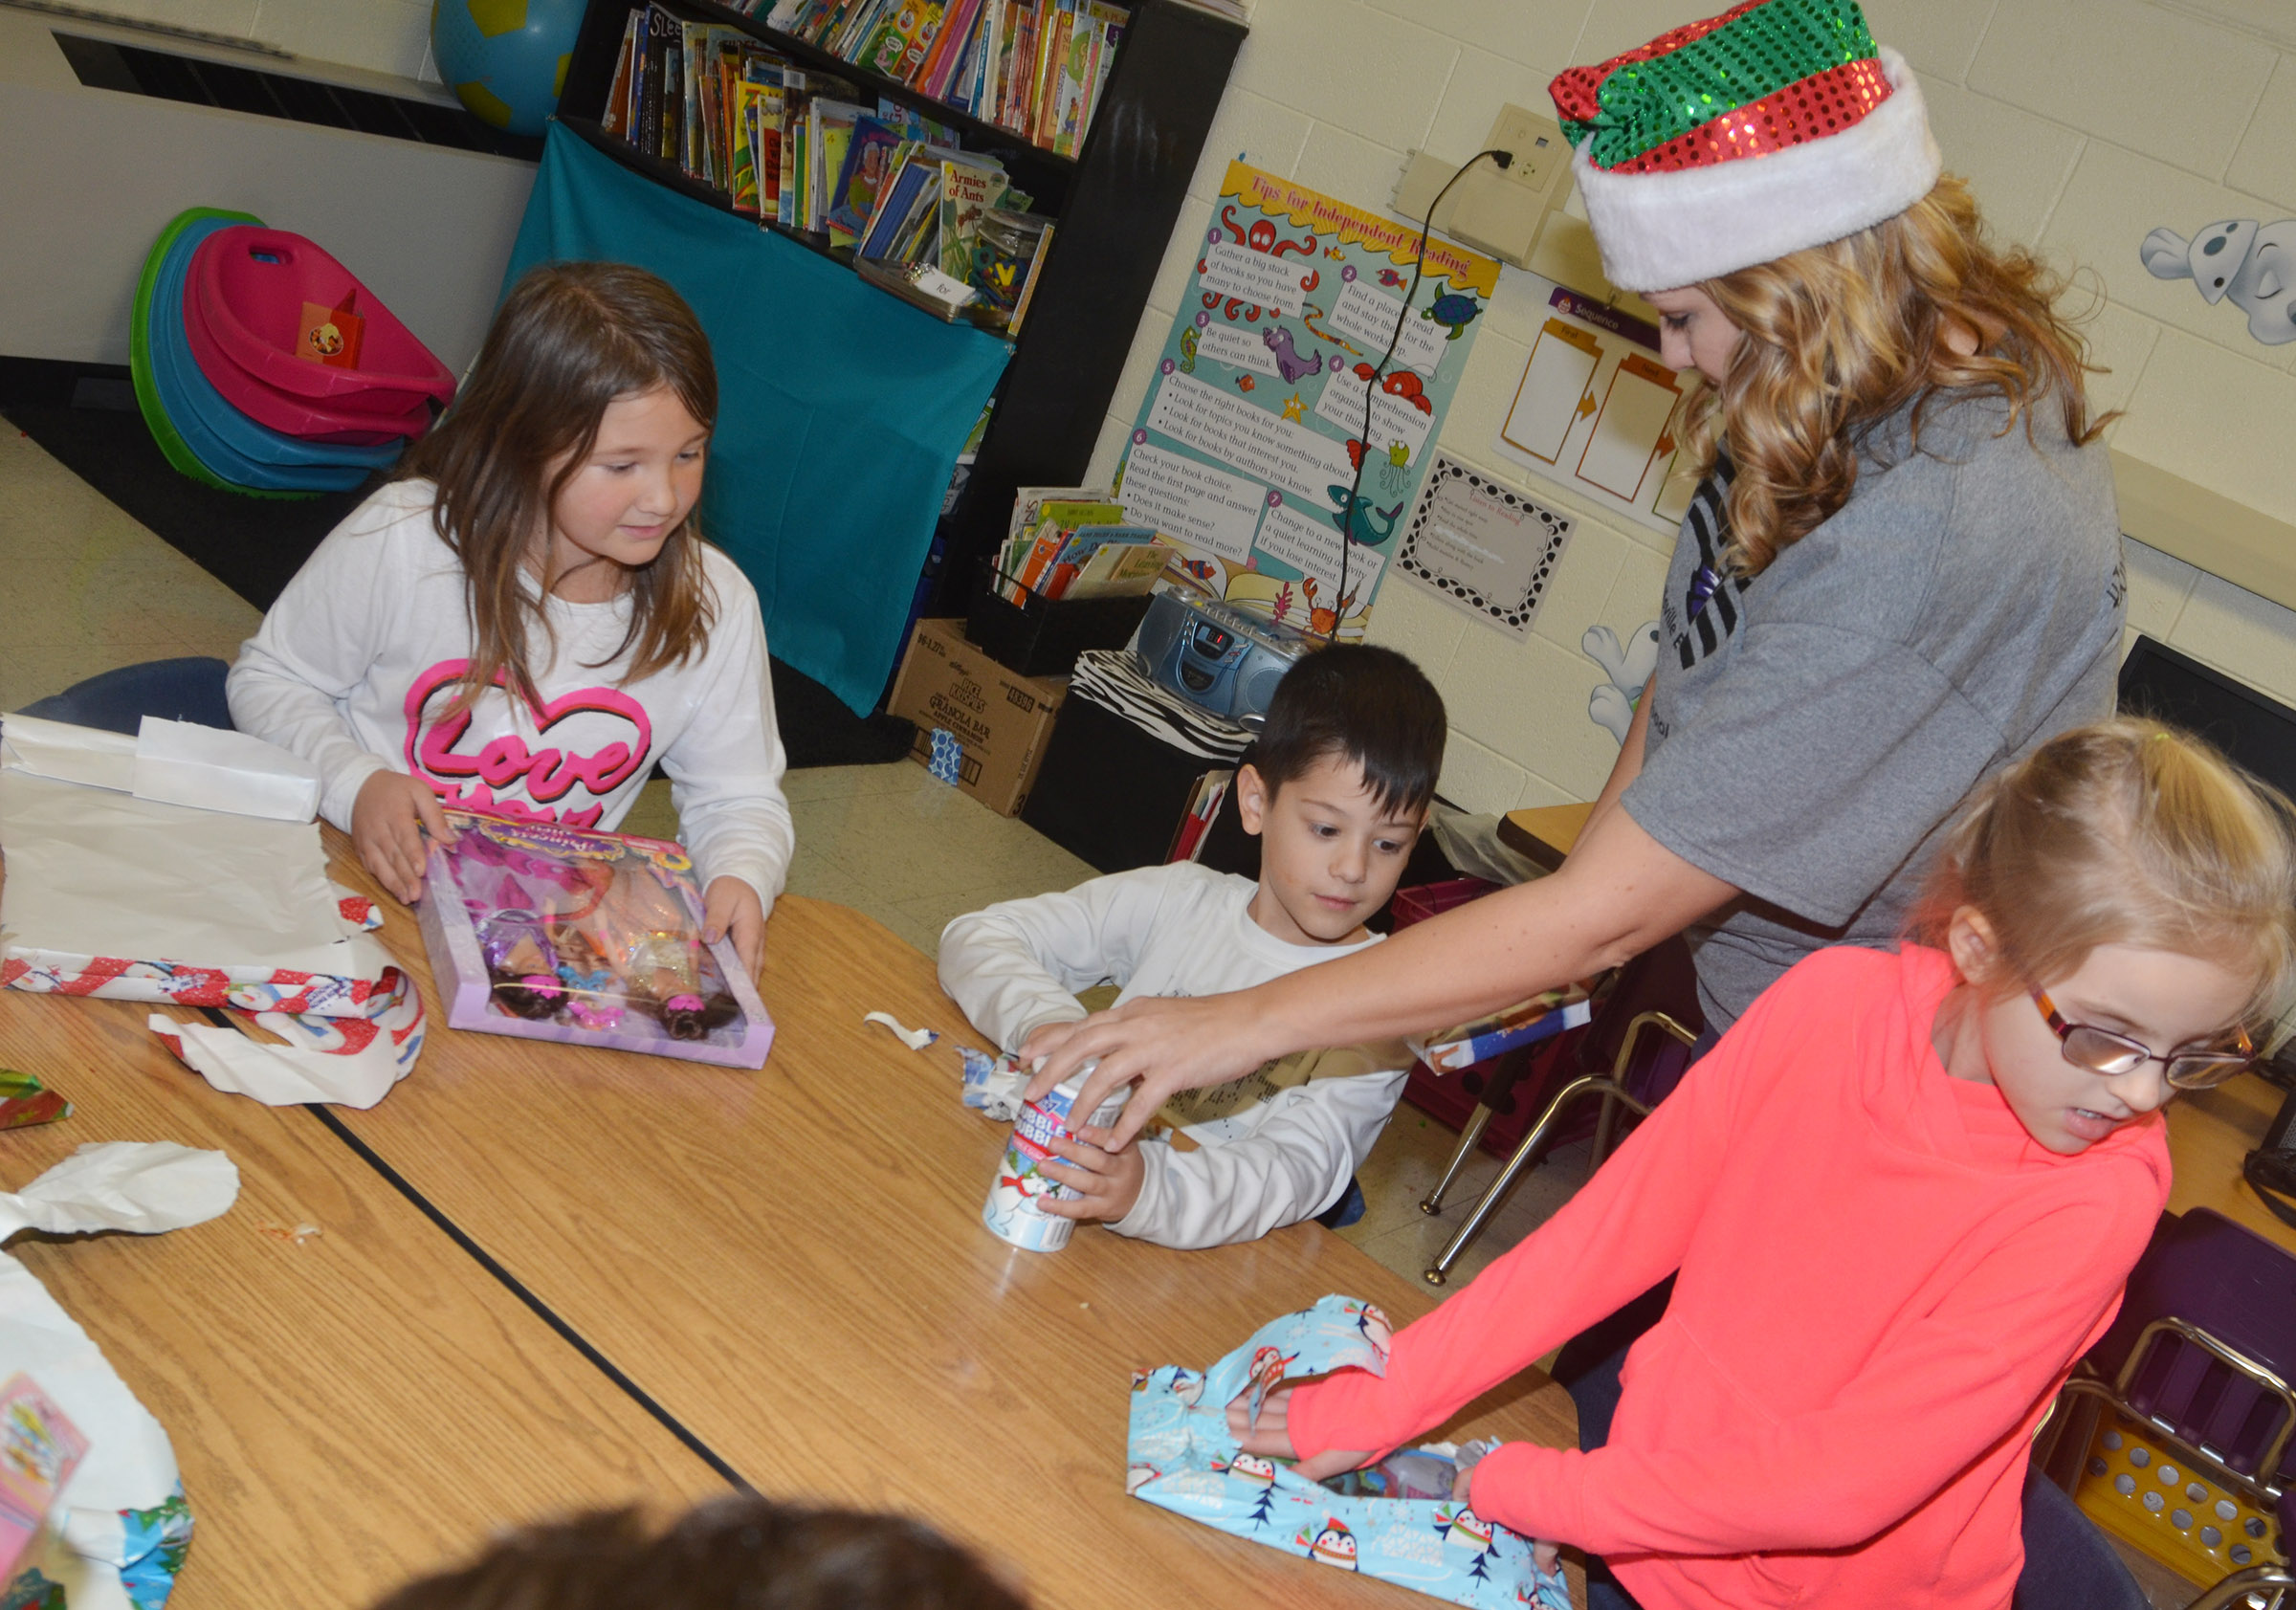 CES first-graders, from left, Destiny Rhinehart, Abram Adkins and Jaden Lutz open presents they received in their gift exchange in Amanda Greer's class.